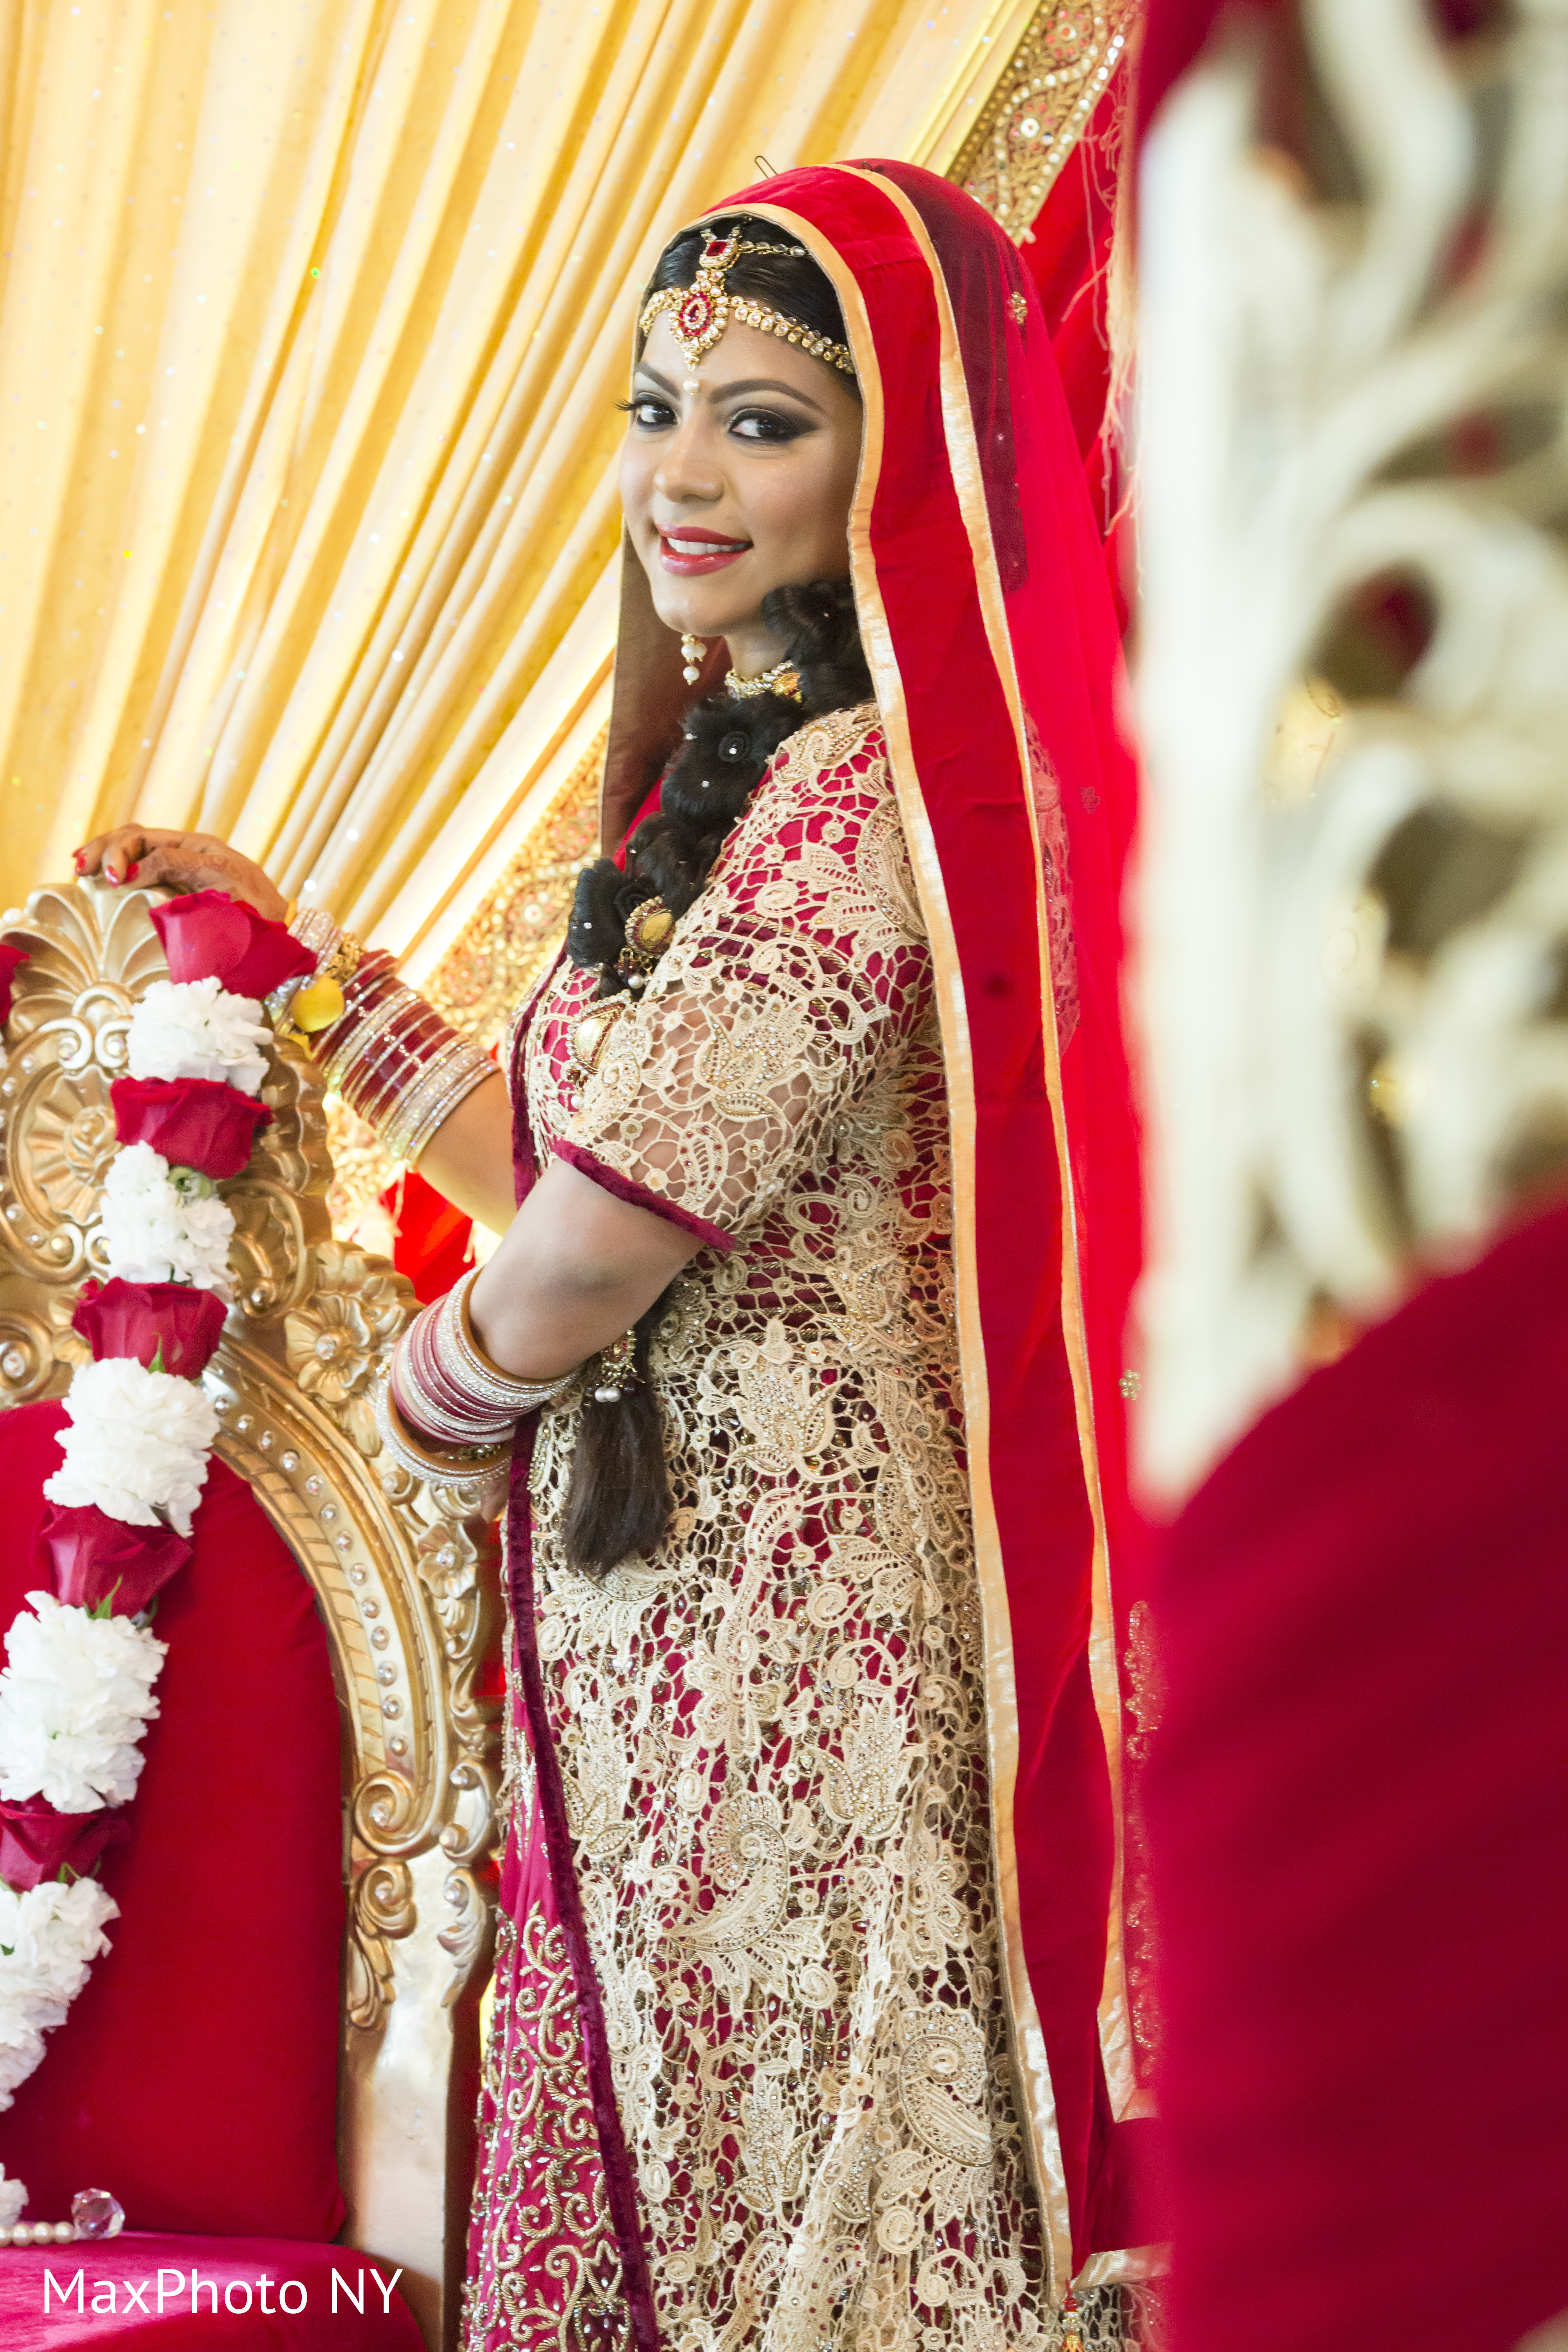 Getting ready in queens ny indian wedding by by maxphoto for Indian jewelry queens ny